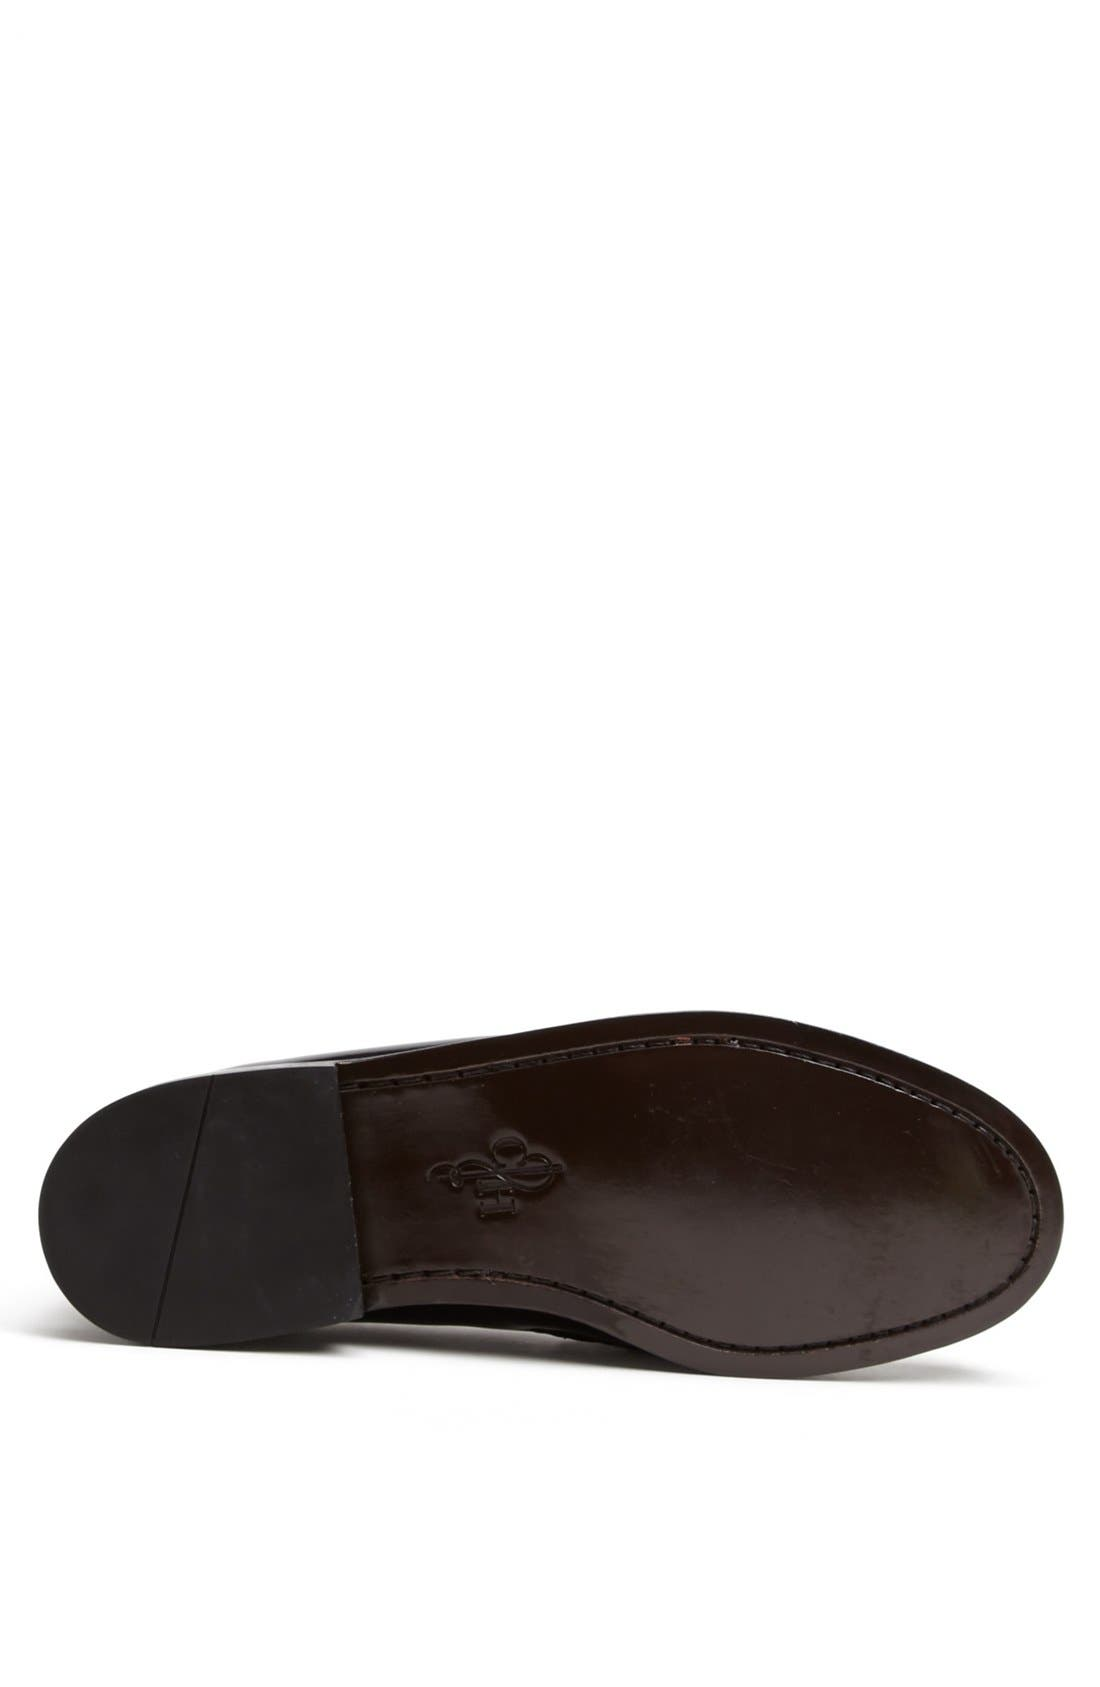 Alternate Image 4  - Cole Haan 'Pinch Buckle' Loafer   (Men)